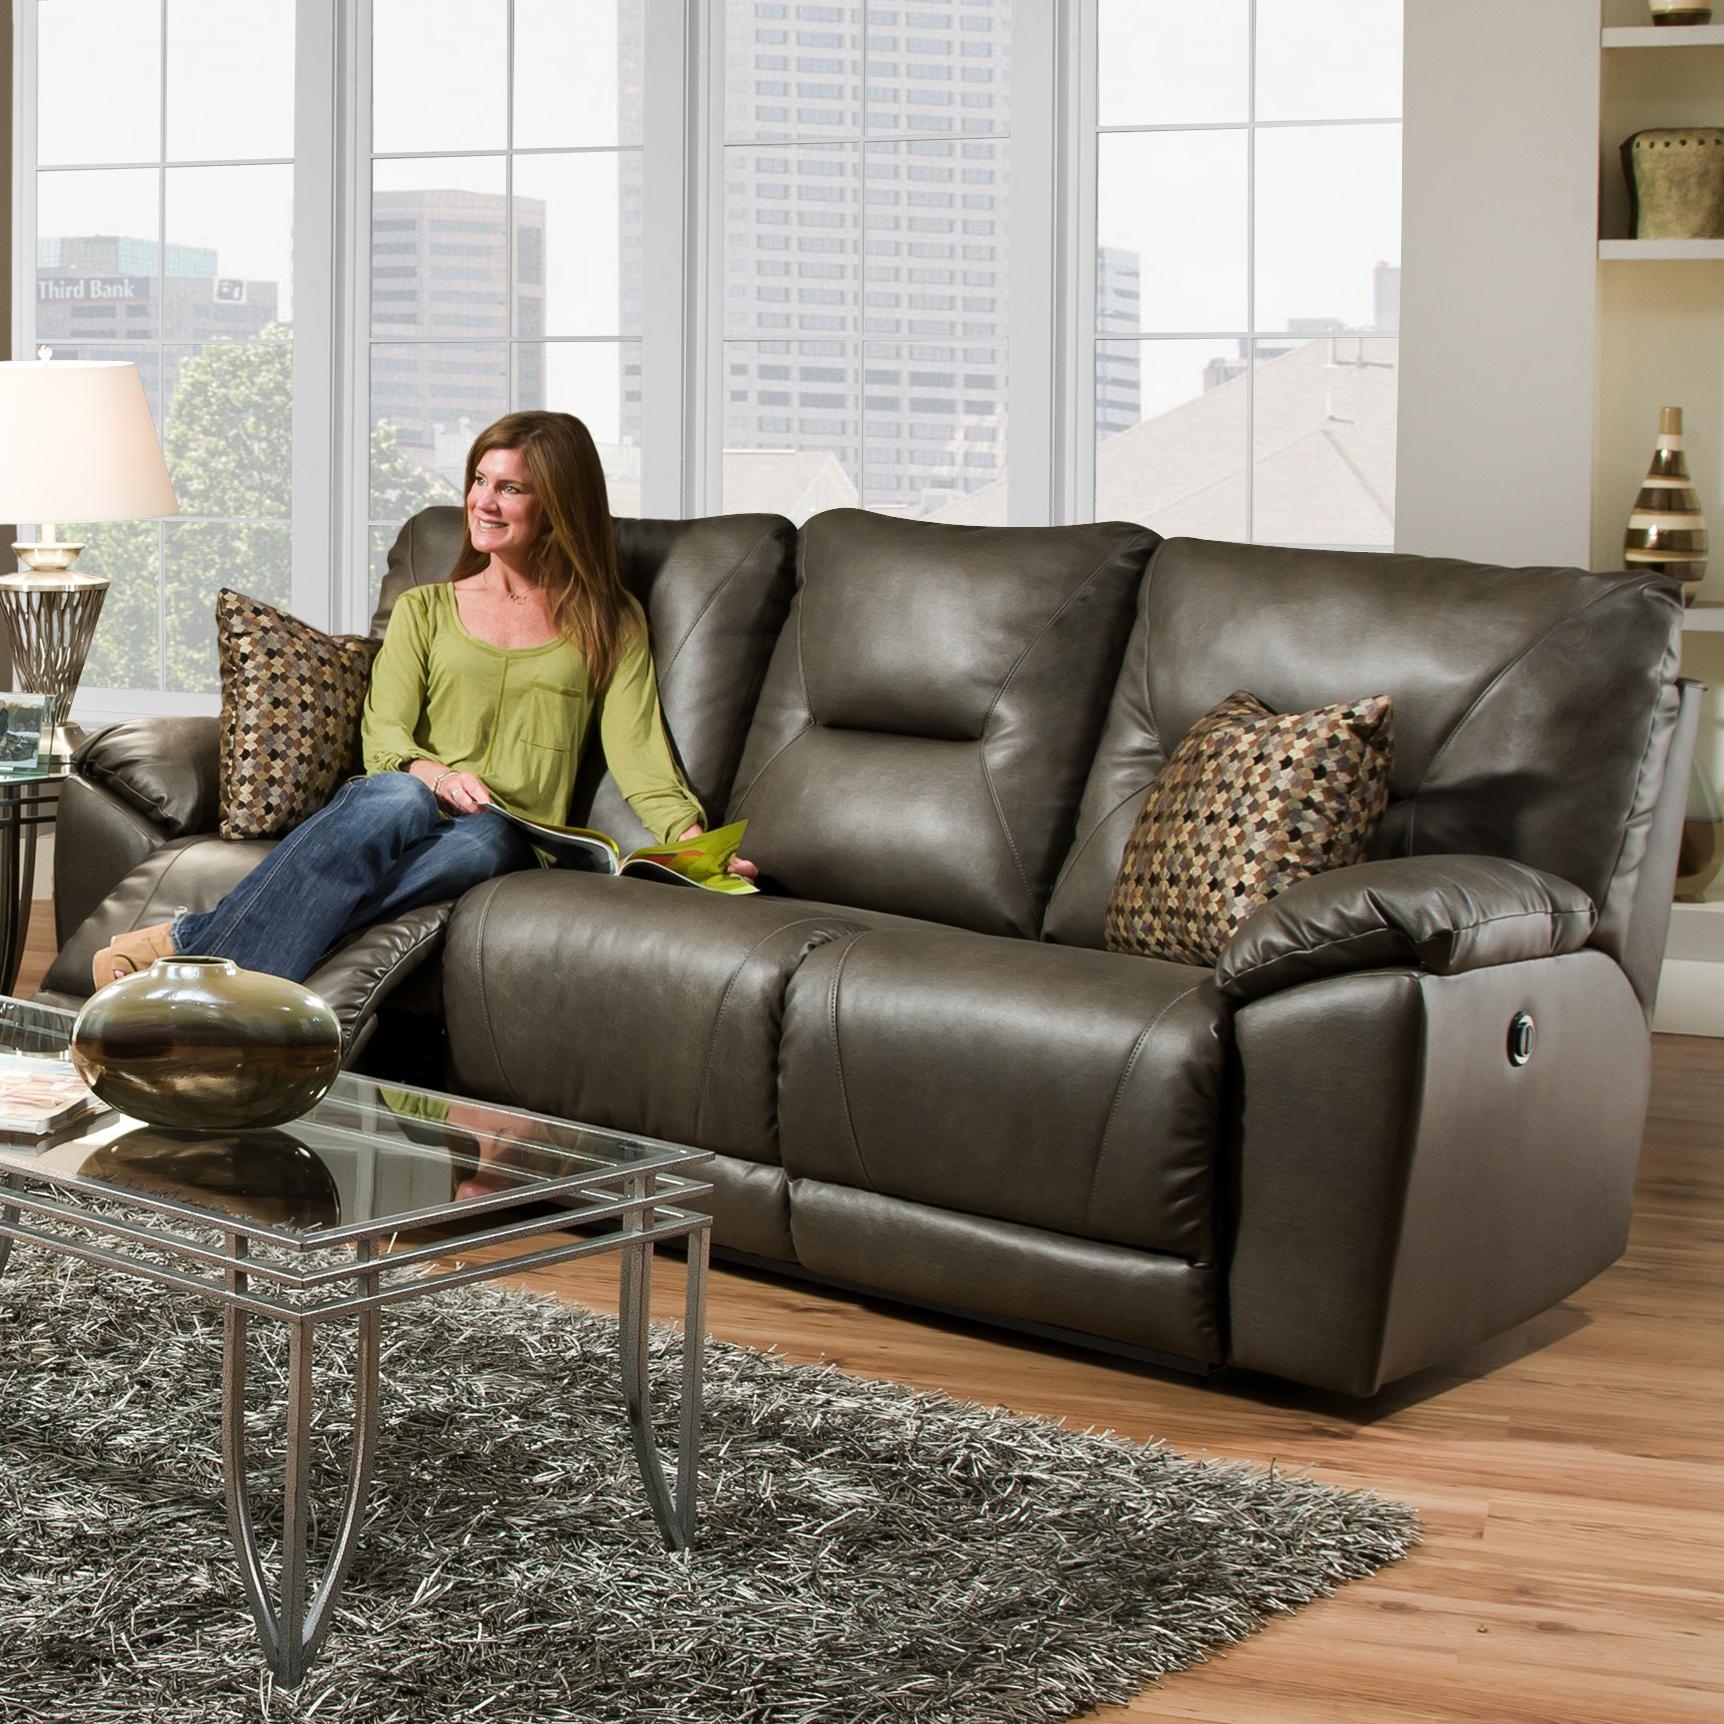 Southern Motion Dynamo Double Reclining Sofa with Pillows  - Item Number: 590-32